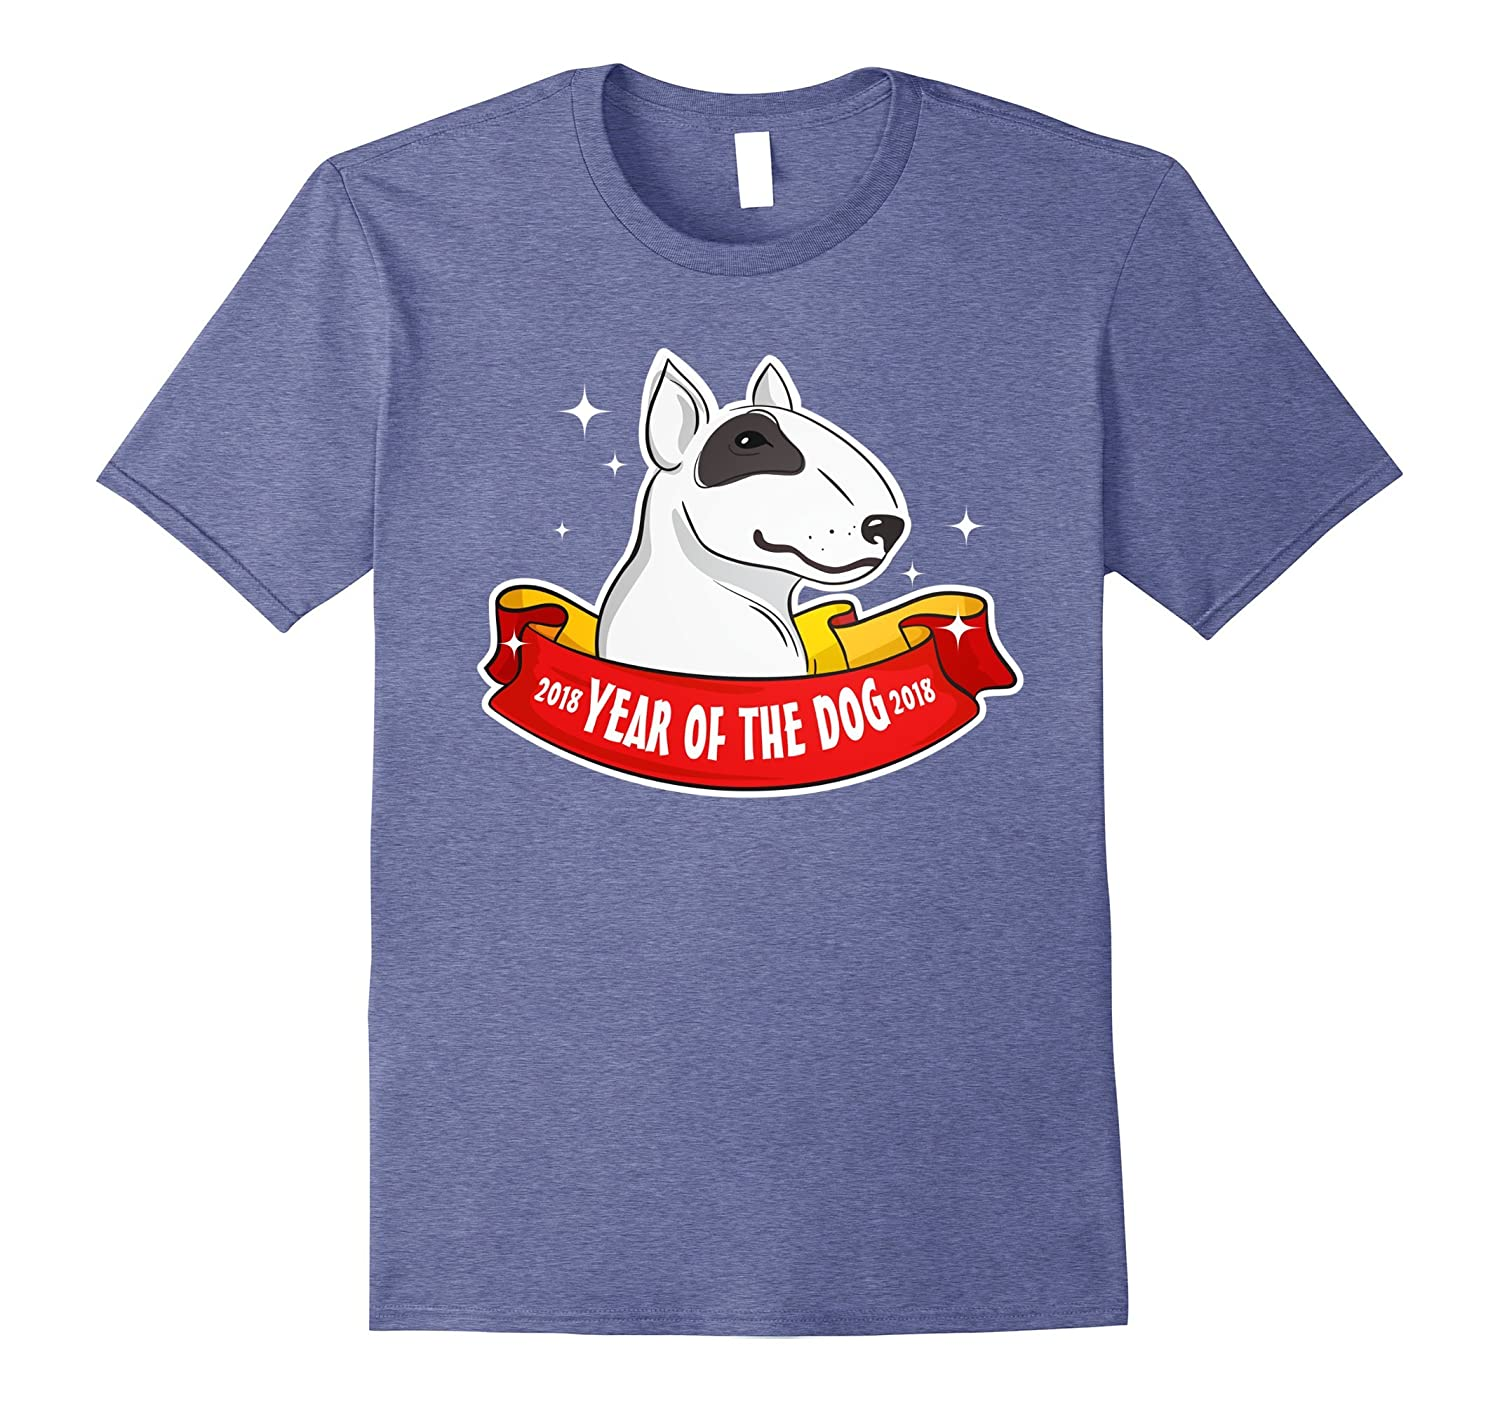 2018 The Year OF The Dog T-Shirt Men Women And Kids Styles-4LVS